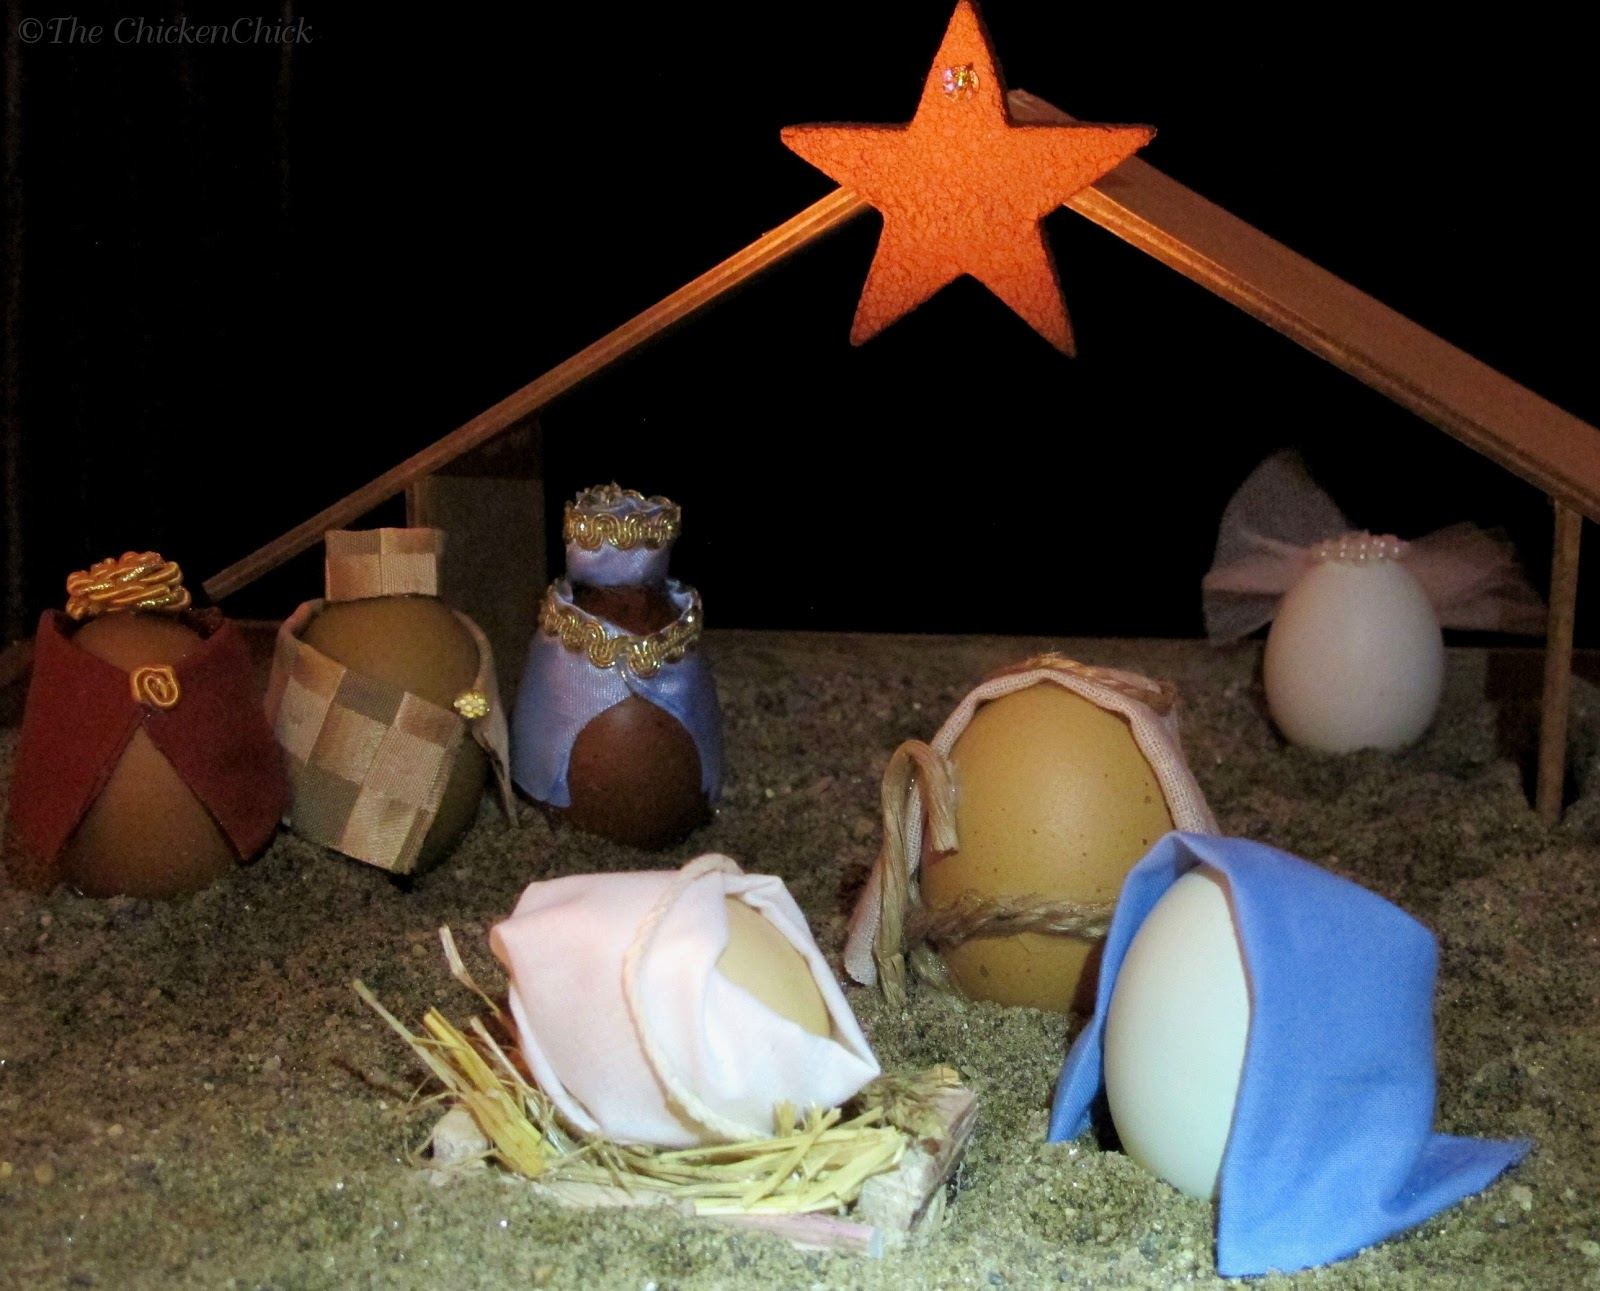 Diy blown egg nativity scene the reason for the season the diy blown egg nativity scene the reason for the season the chicken chick solutioingenieria Choice Image